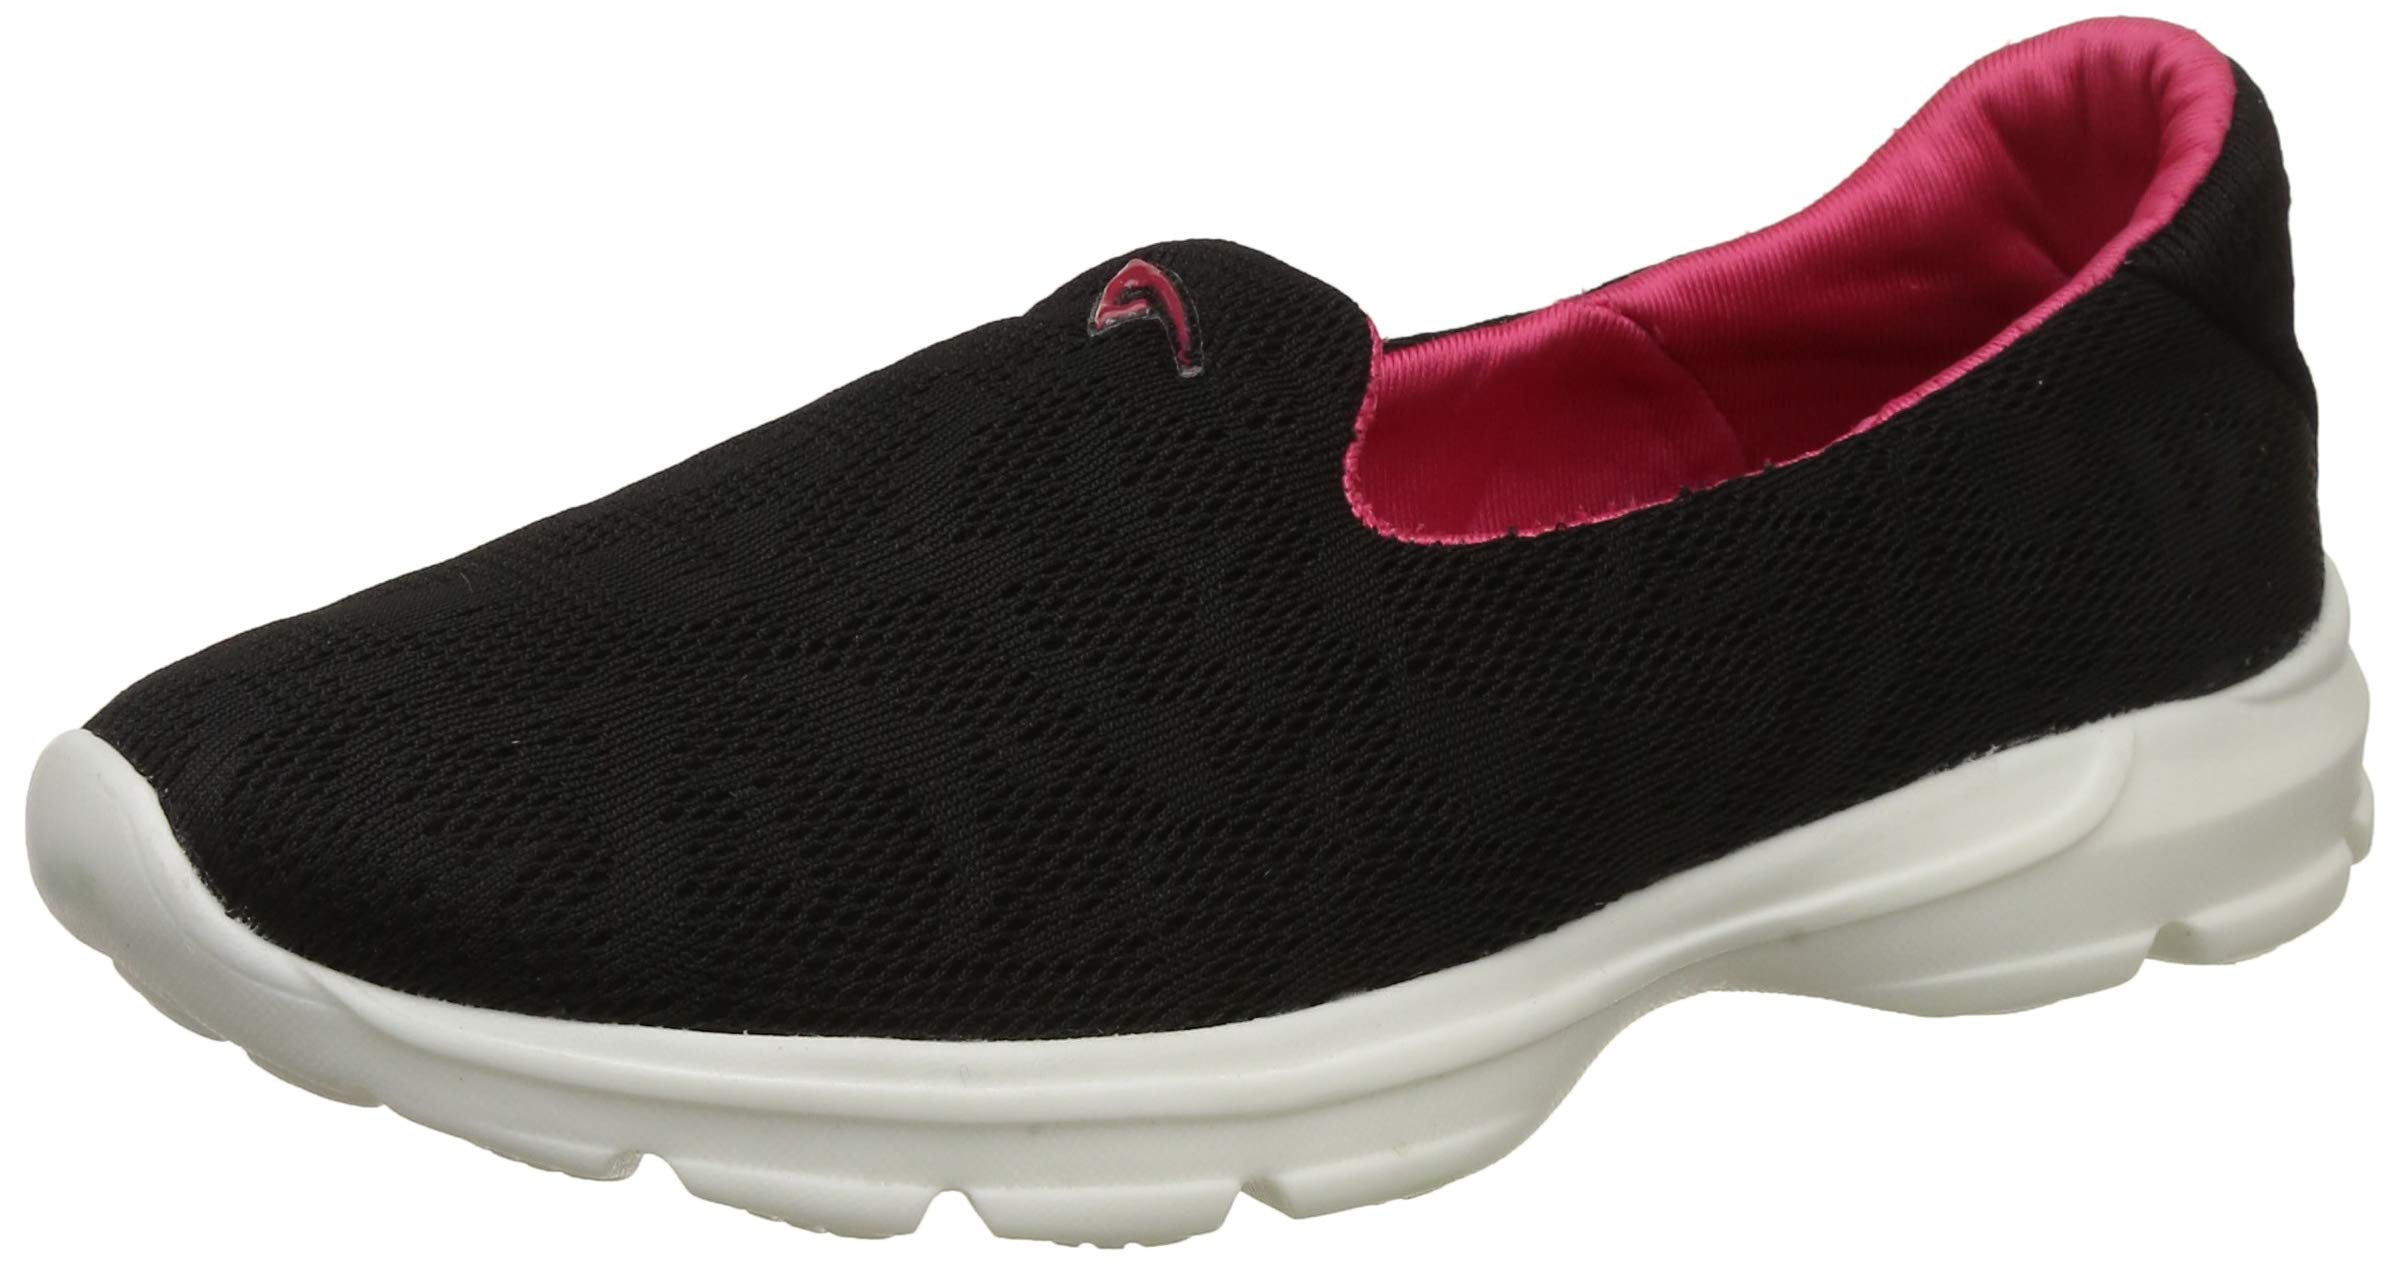 Aqualite Women's Running Shoes